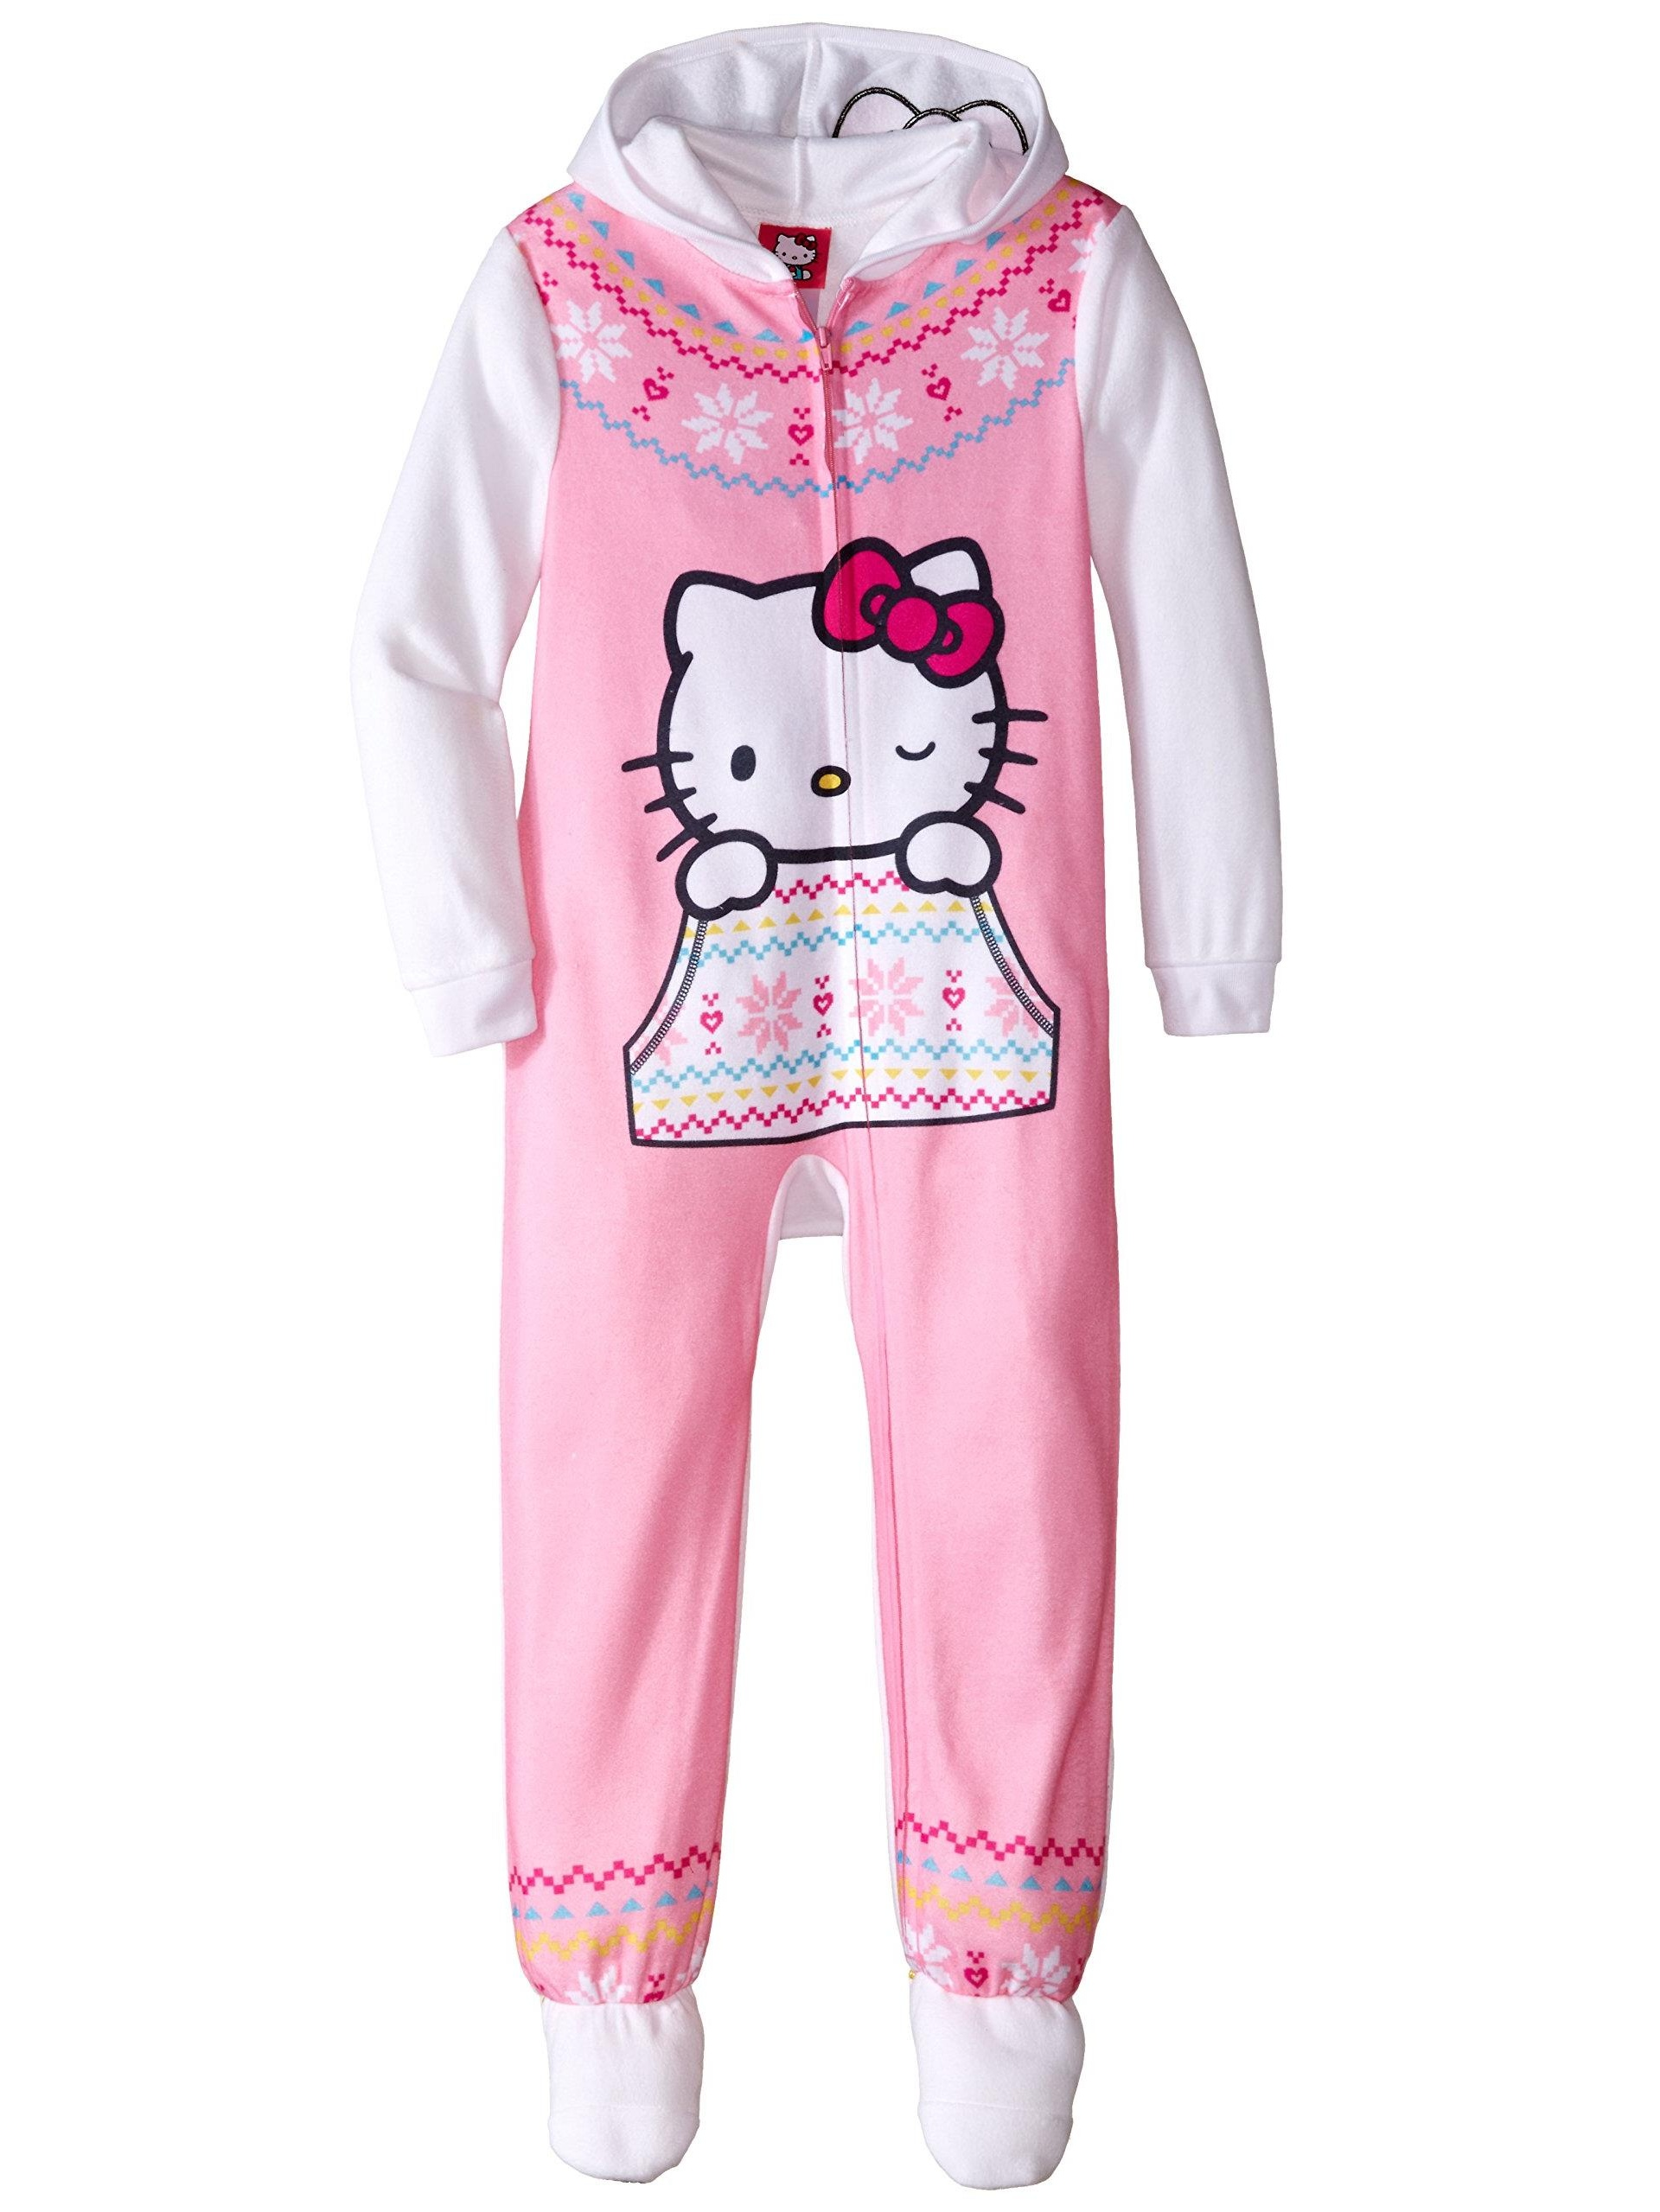 Girls' Hooded Fleece Blanket Sleeper Pajama, Sizes 4-10